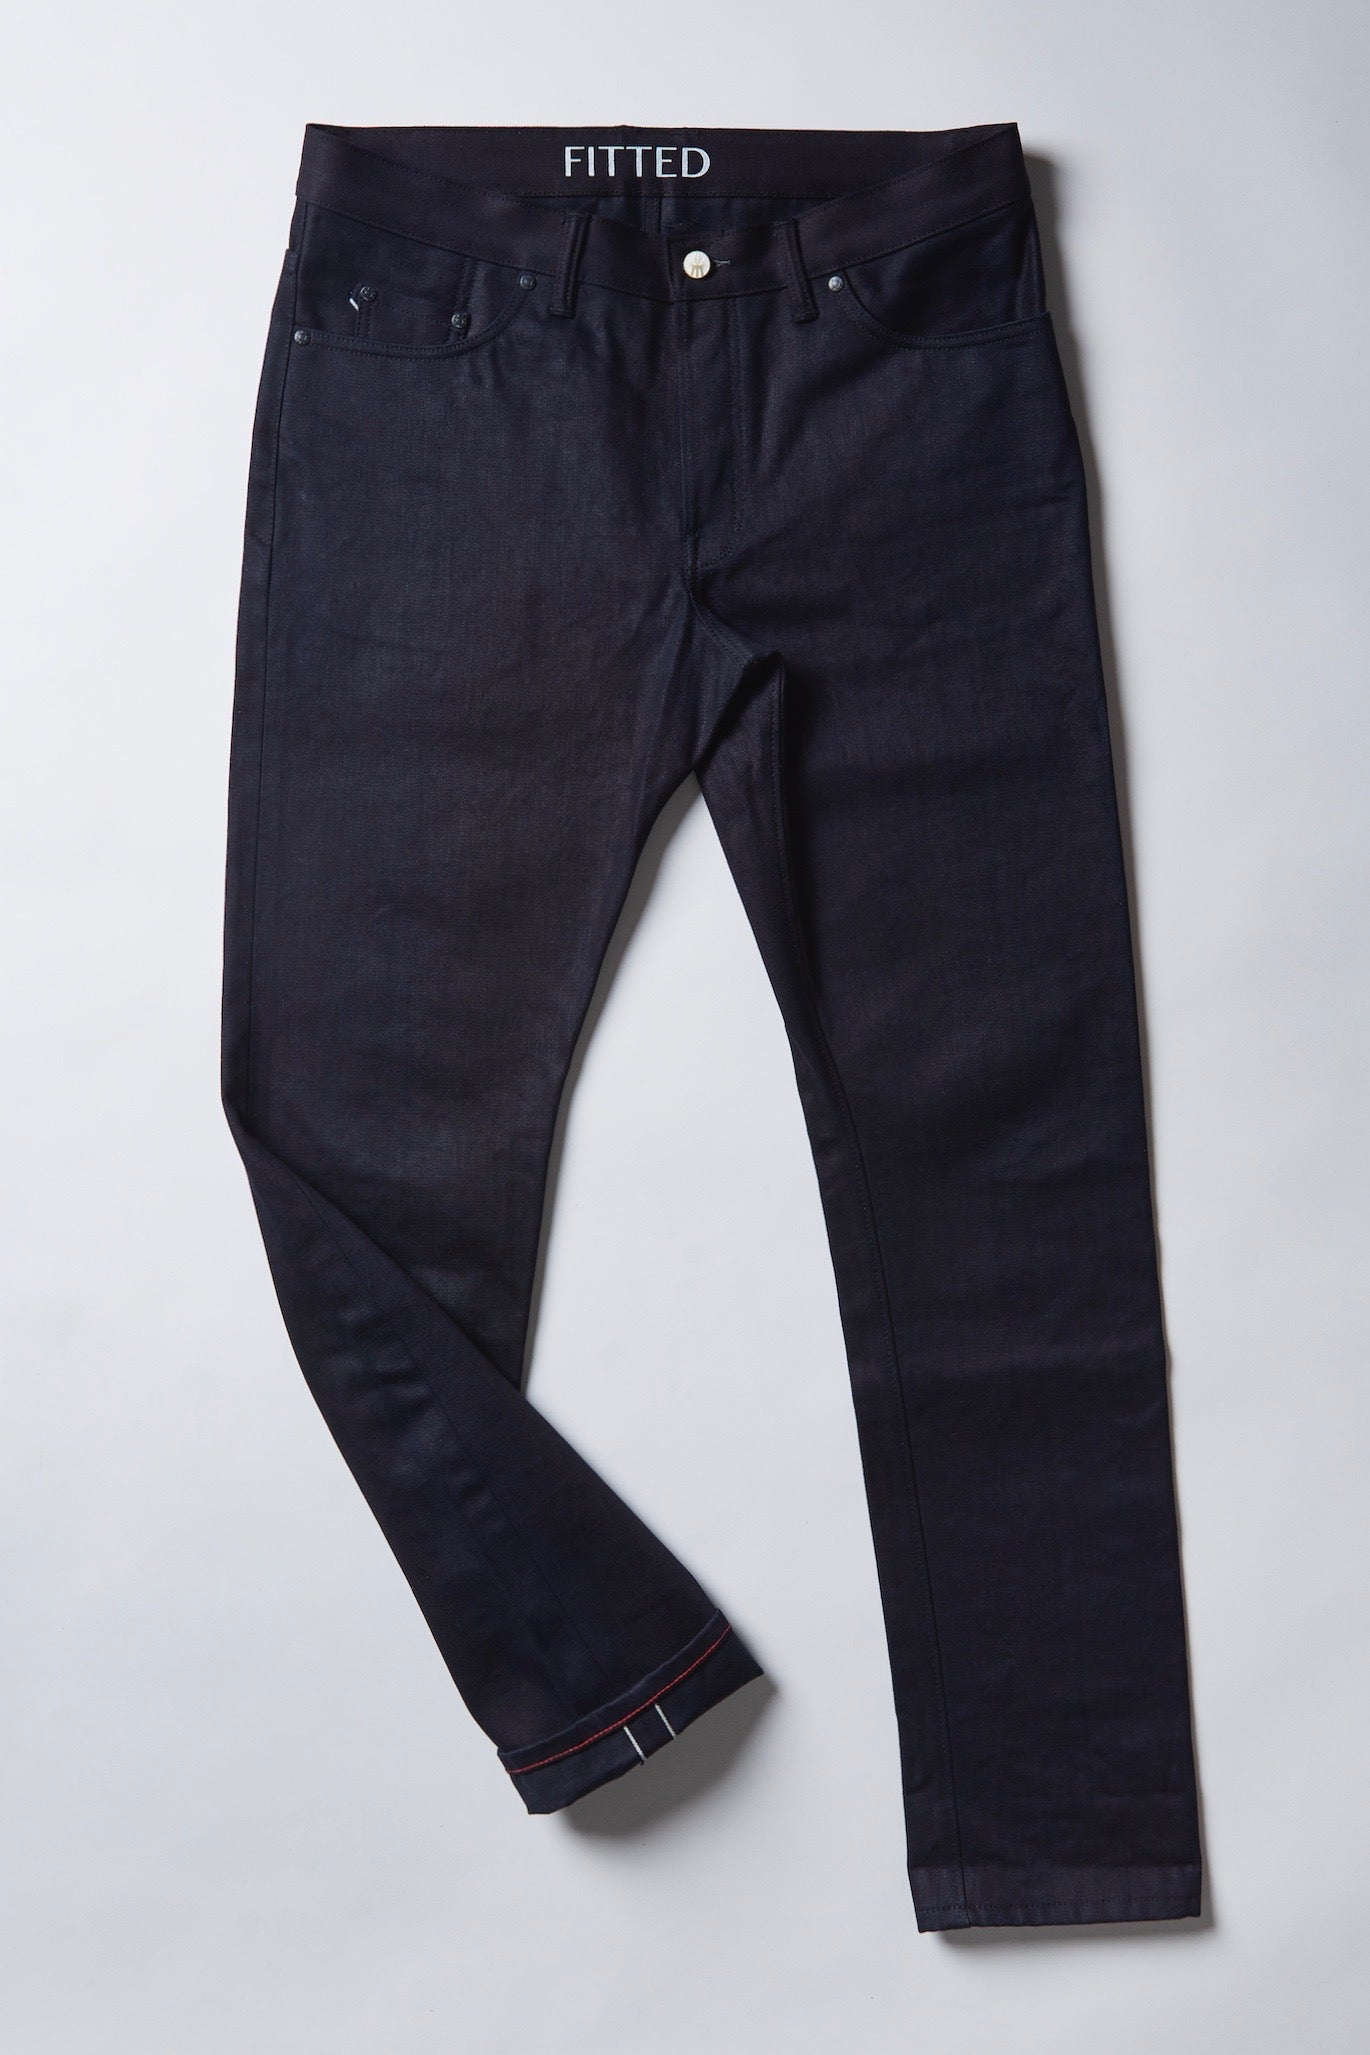 J14 Double Indigo - FITTED Underground